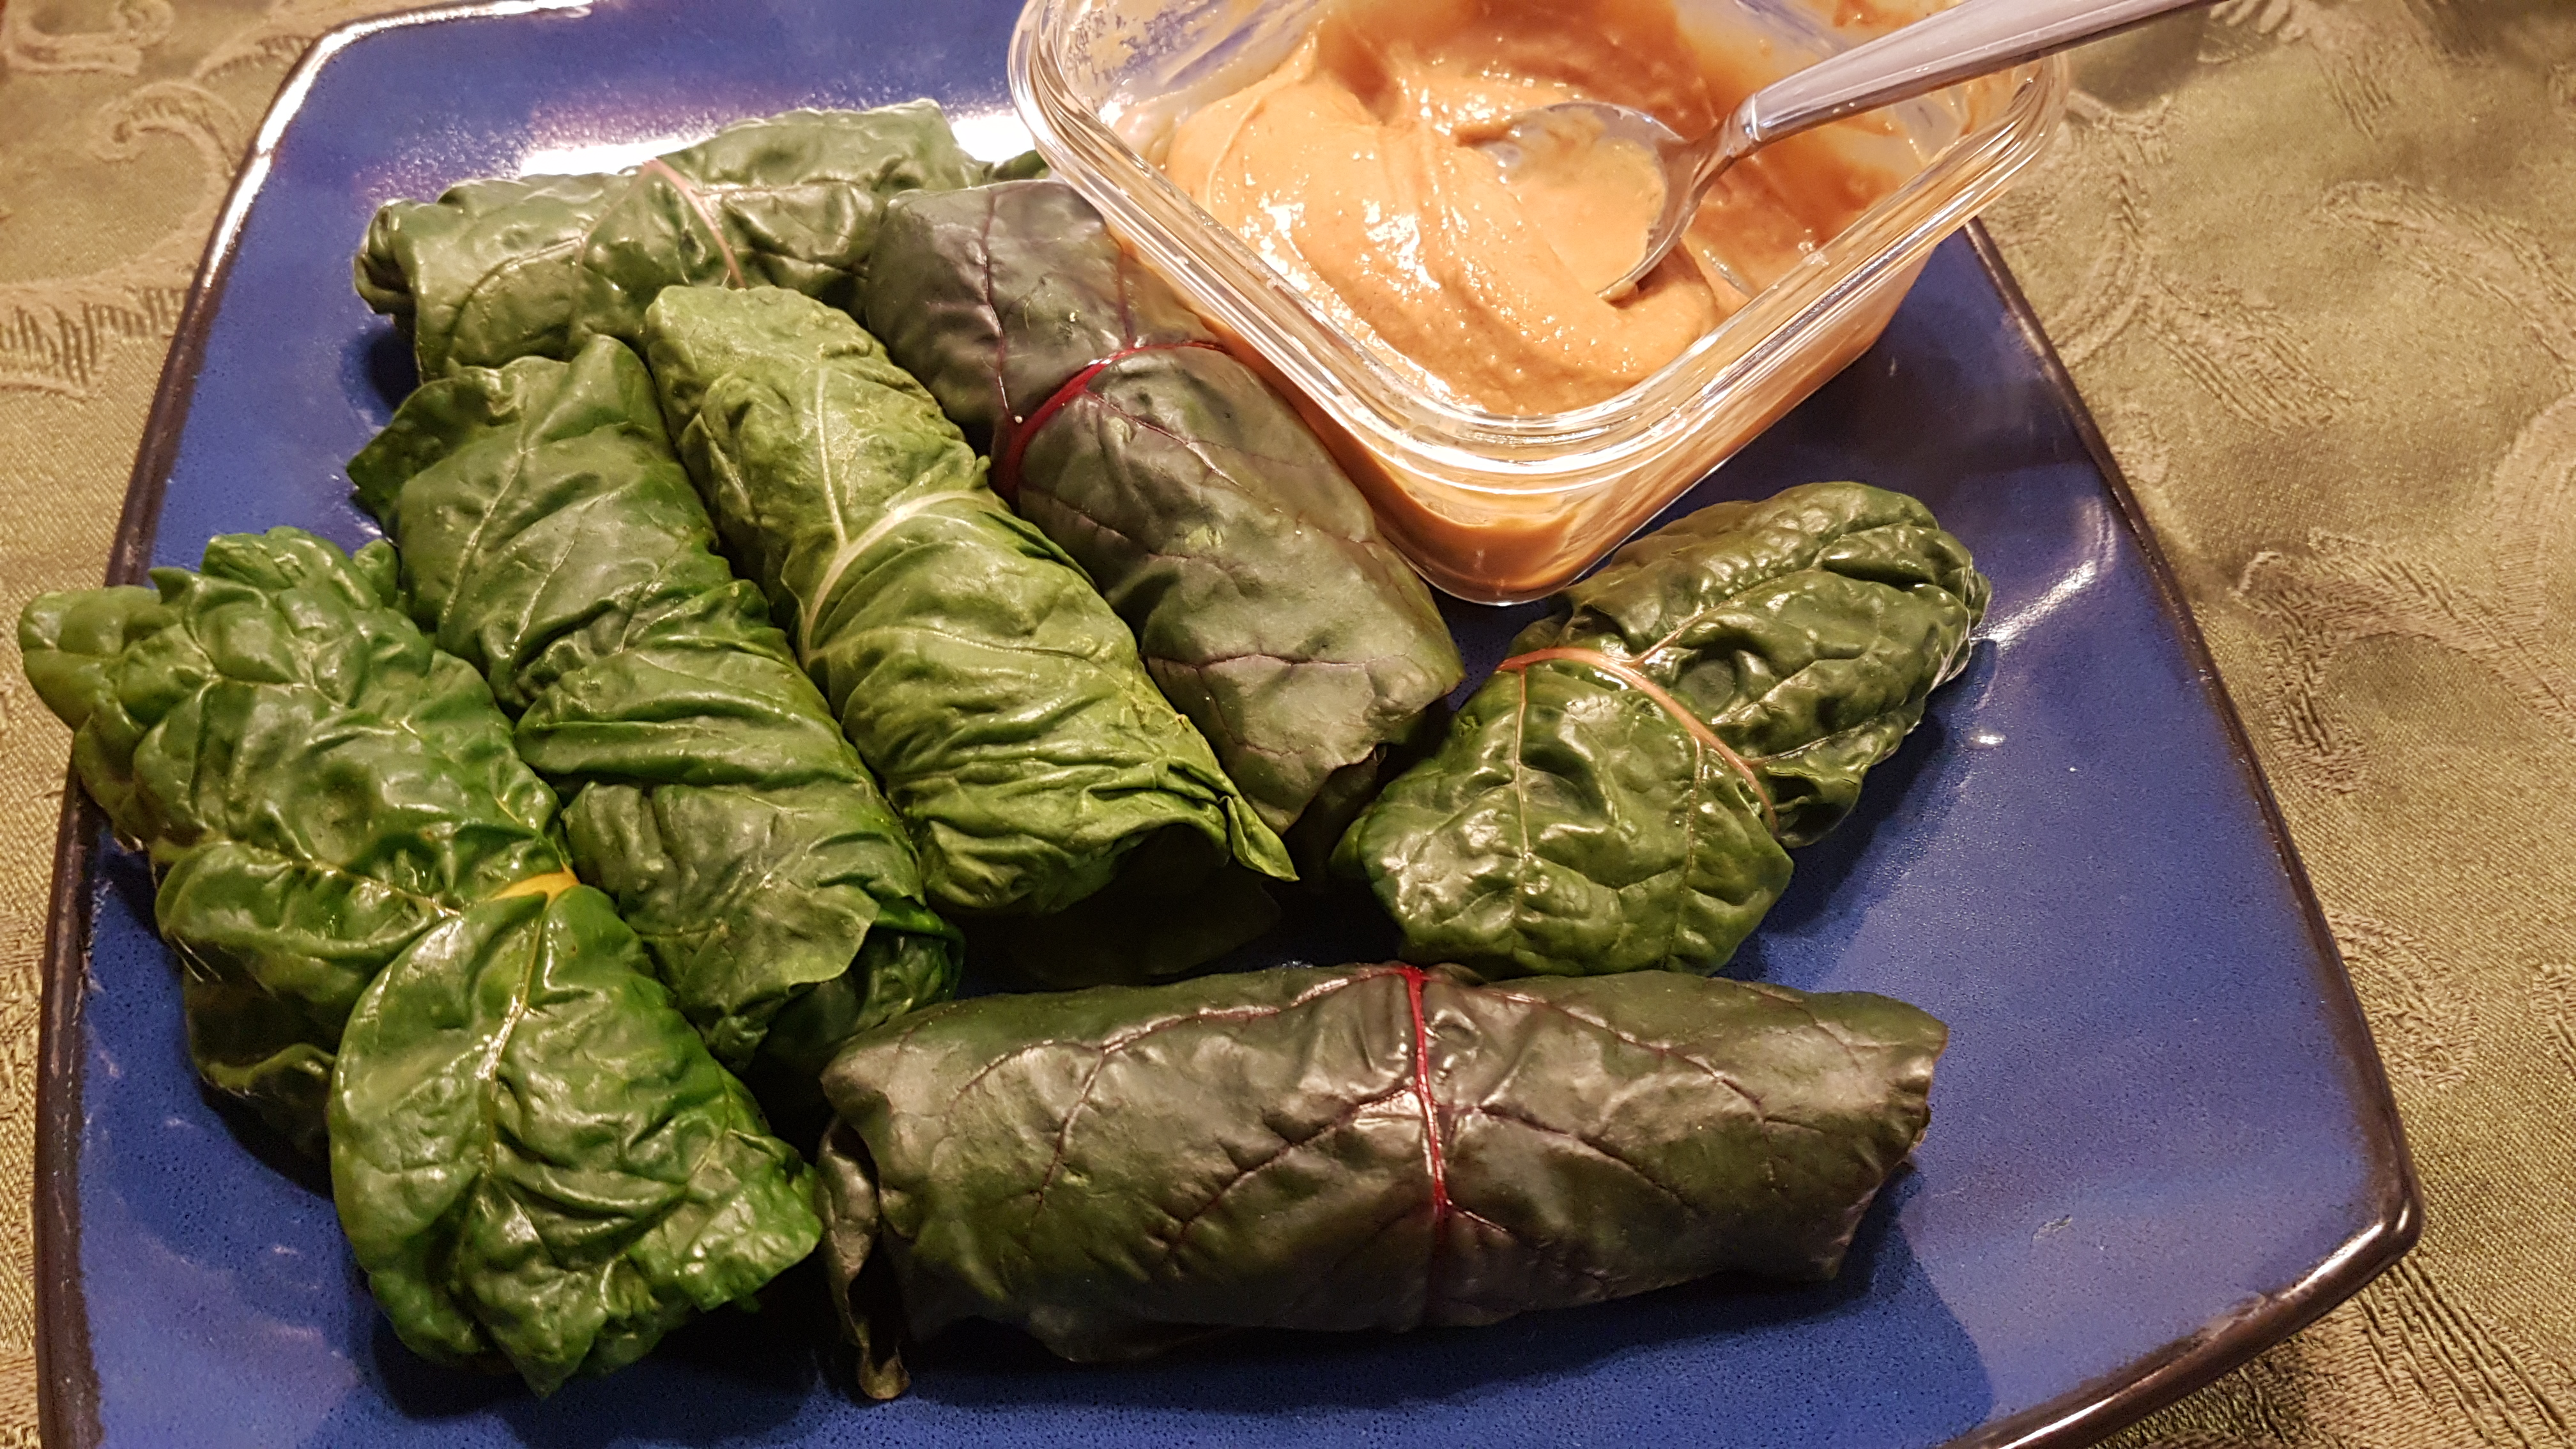 Swiss chard spring rolls with peanut sauce